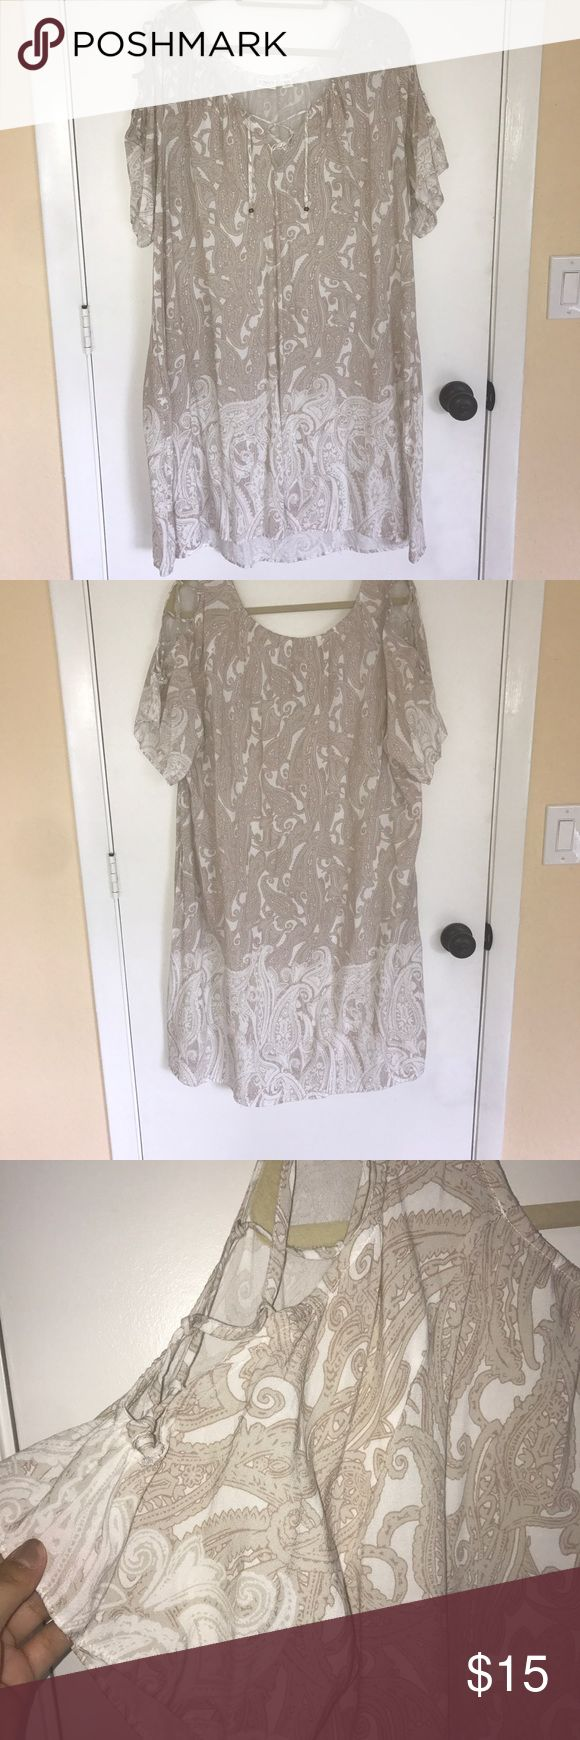 Paisley pattern weekend dress This is an easy throw on in the summer getting ready for the beach or pool, Or a hot summer weekend BBQ kind of dress. Has a subtle paisley print of tan and white, has nice cross cross accent detail on the sleeves and in the front of the dress. Cato Dresses